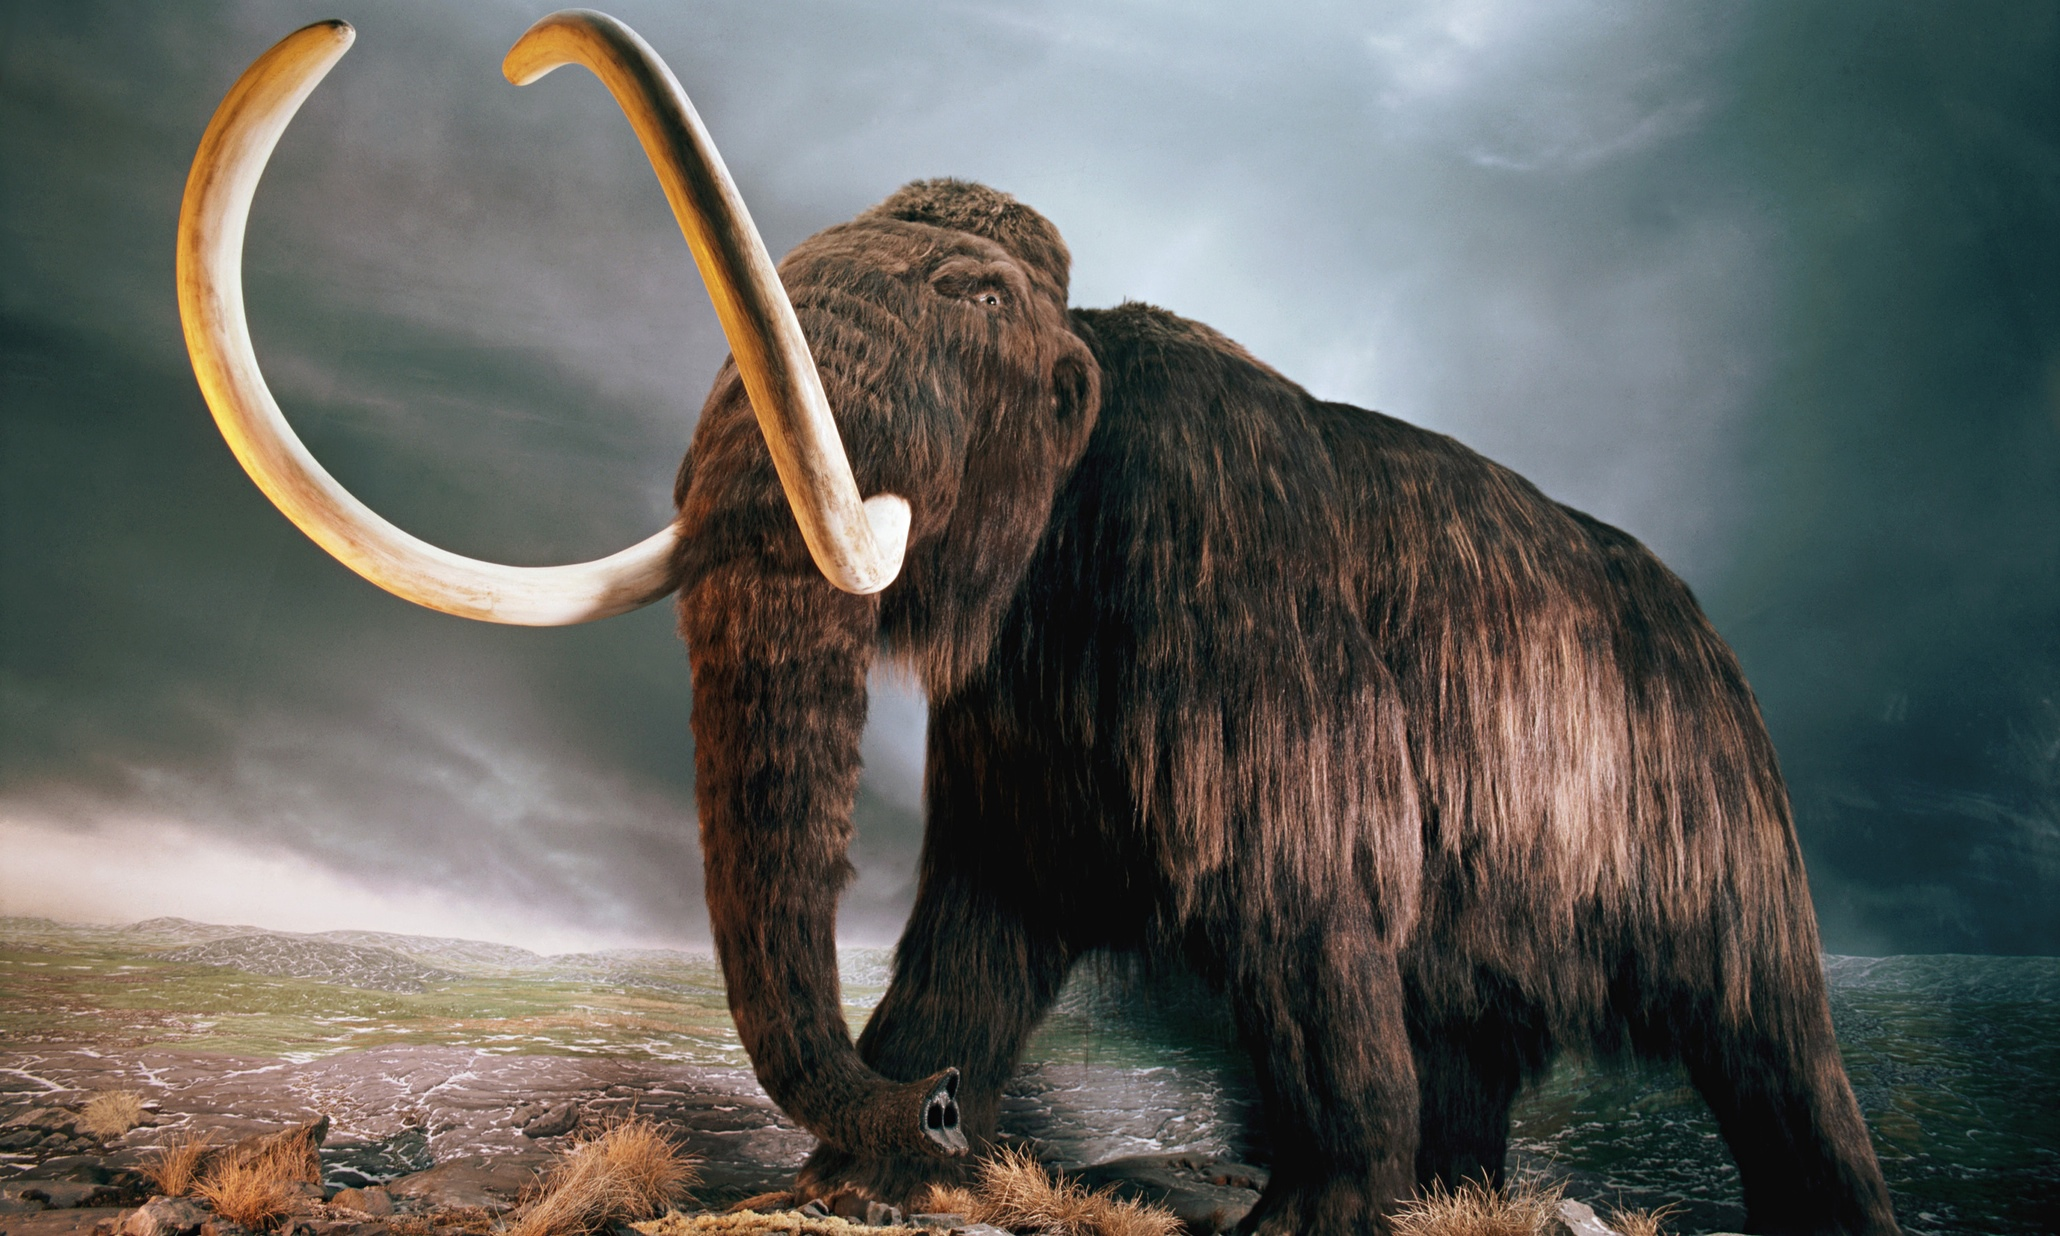 mammals that became extinct in ireland thousands of years ago